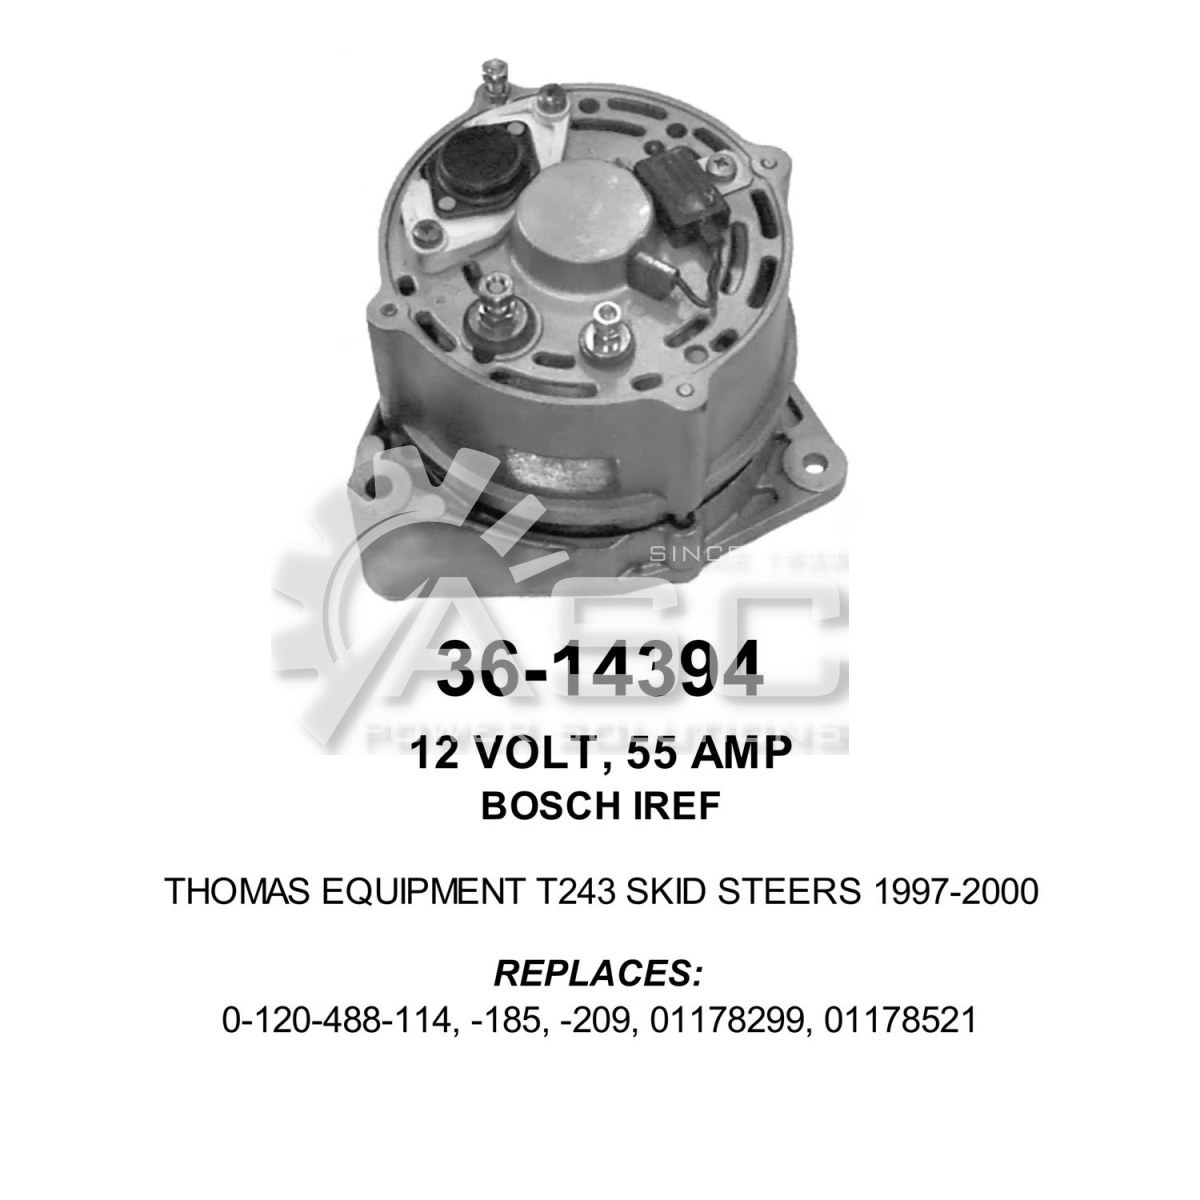 A241427_ASC, Alternator, 12V, 55 Amp, IR, EF, CW, Bosch, Reman